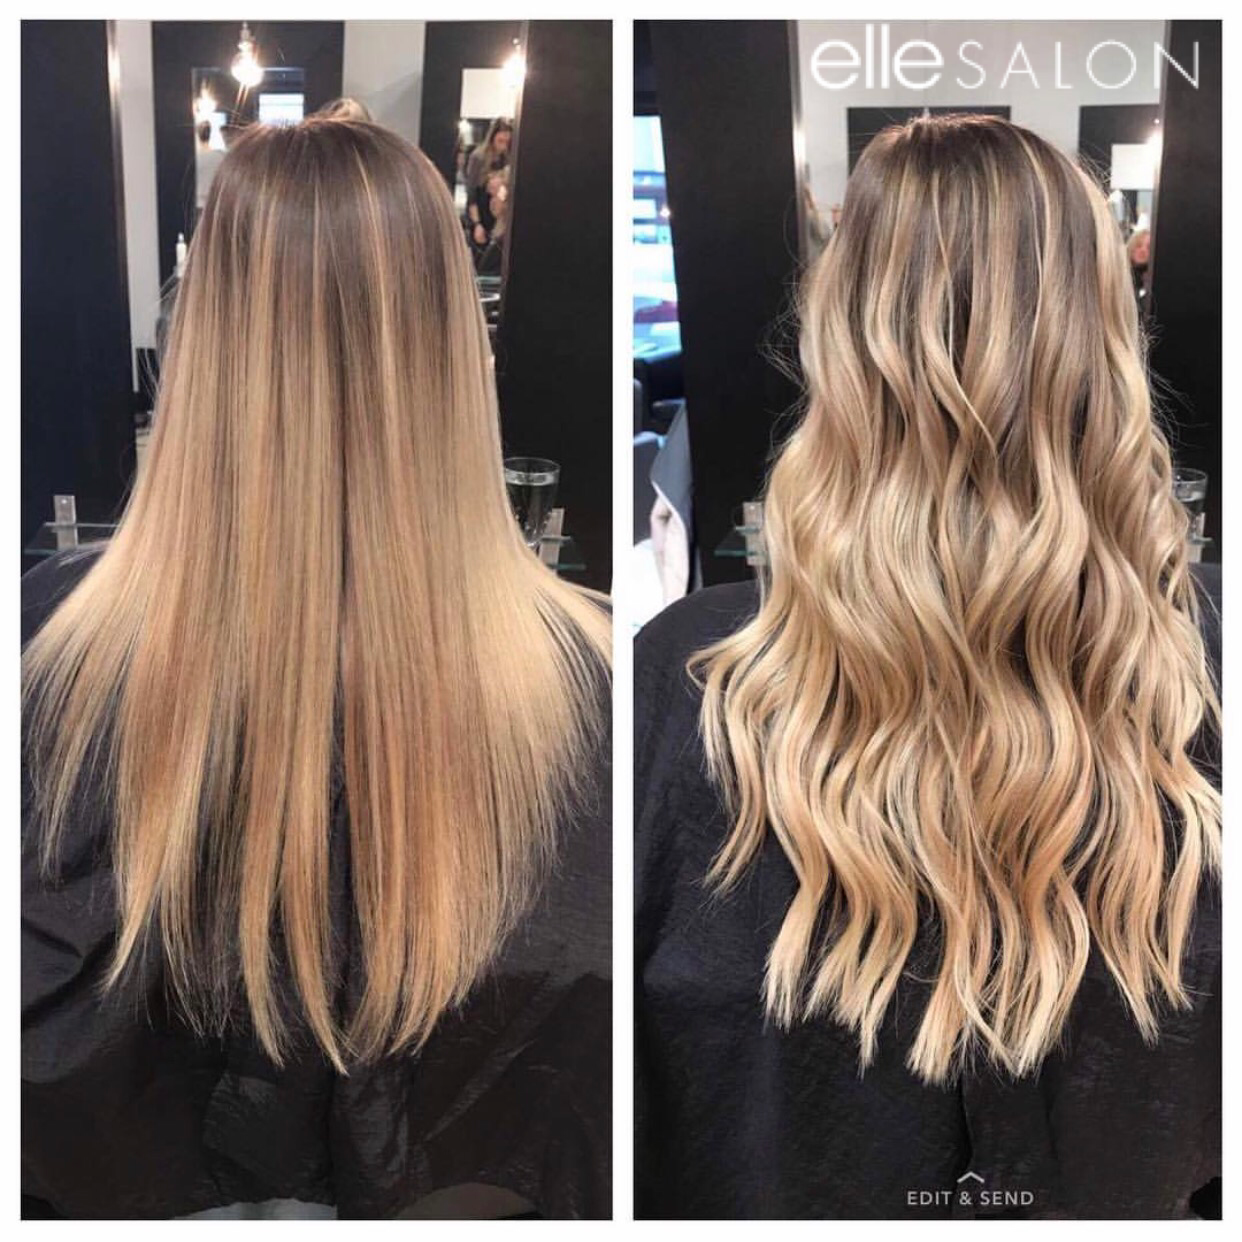 Hair Extensions For The Win Celinefenton Adds Extensions For